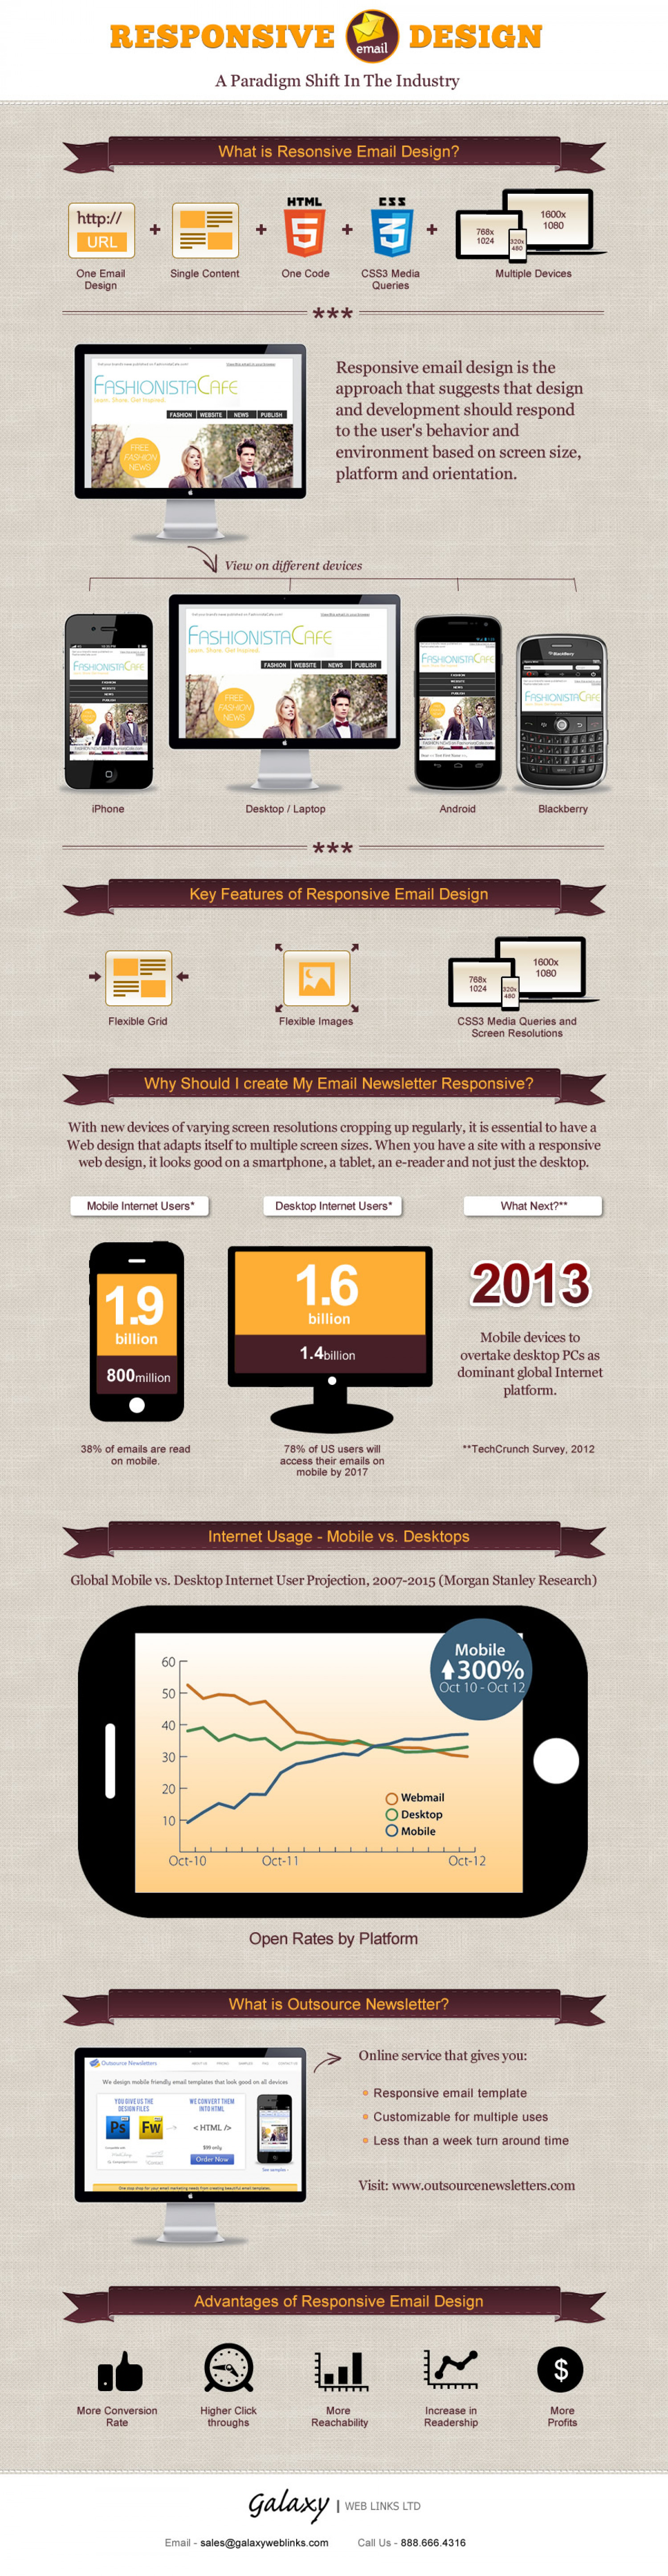 Outsource Newsletters Offer Responsive Mobile Friendly Email Design Service Infographic